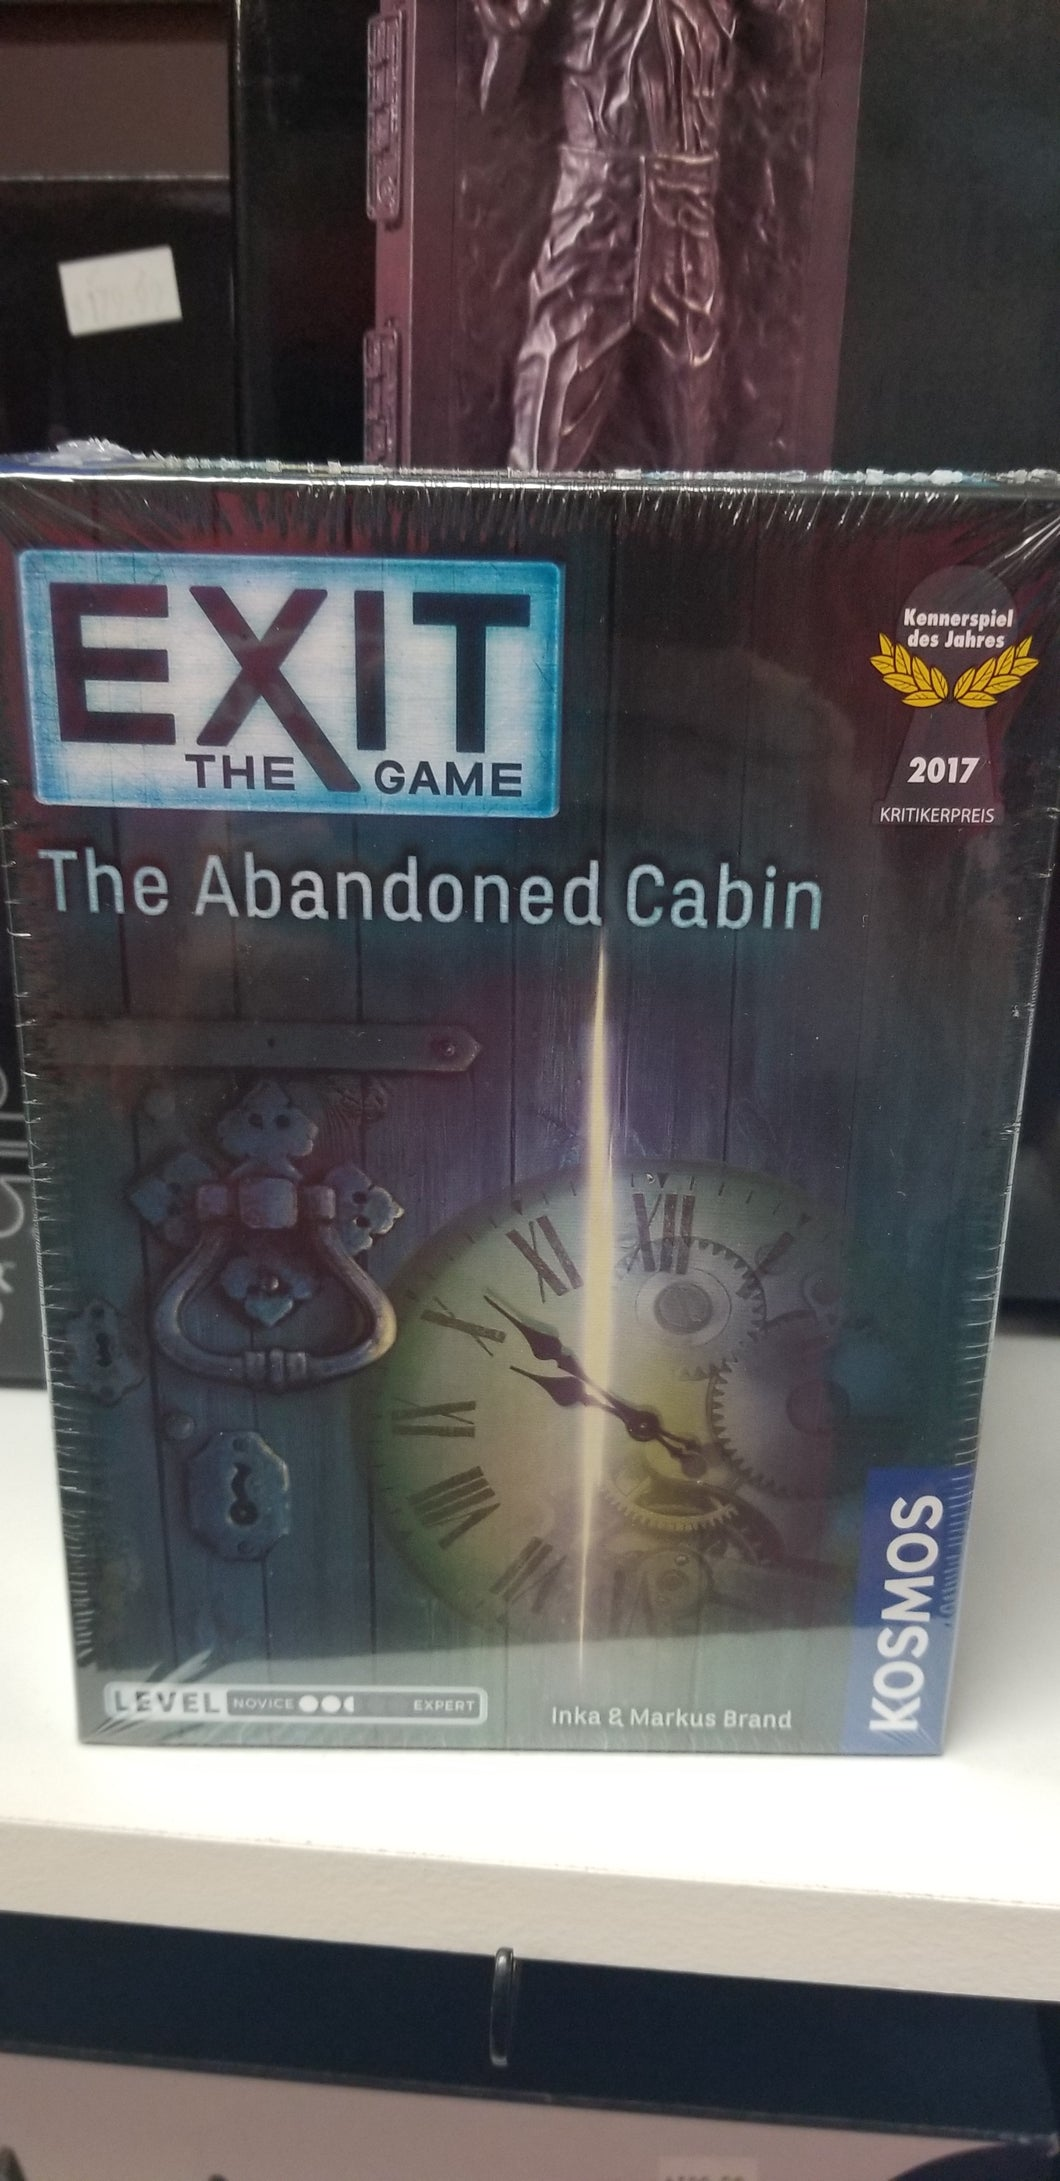 Exit : The Abandoned Cabin